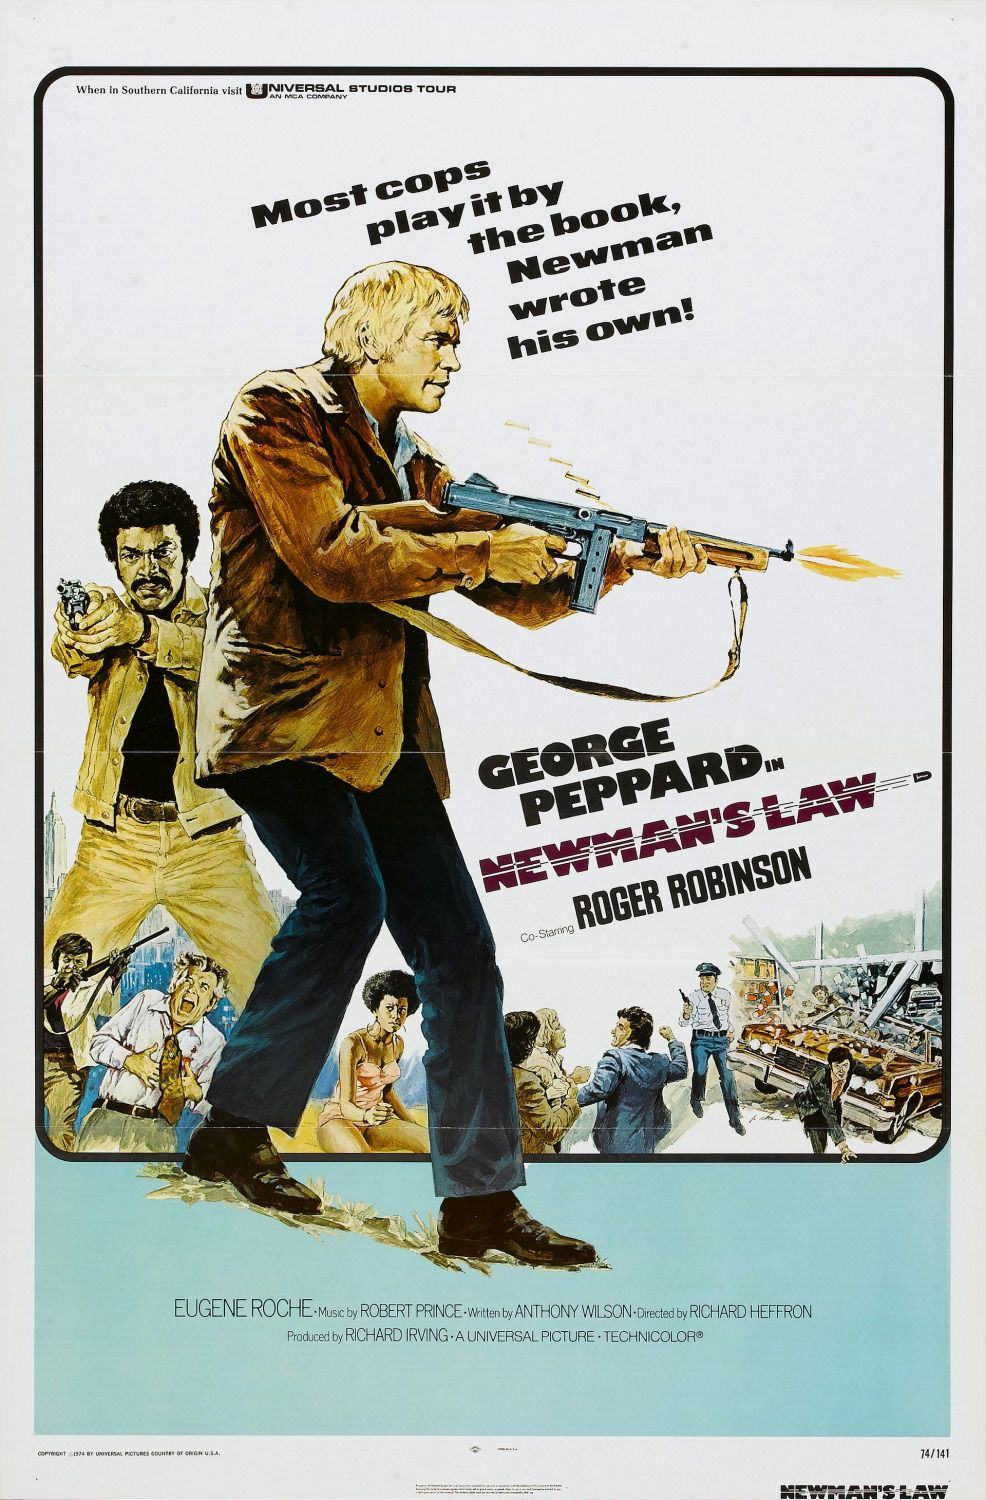 Newman's Law - most cops play it by the book, Newman wrote his own! - George Peppard - Roger Robinson - Eugene Rochefilm poster 1974